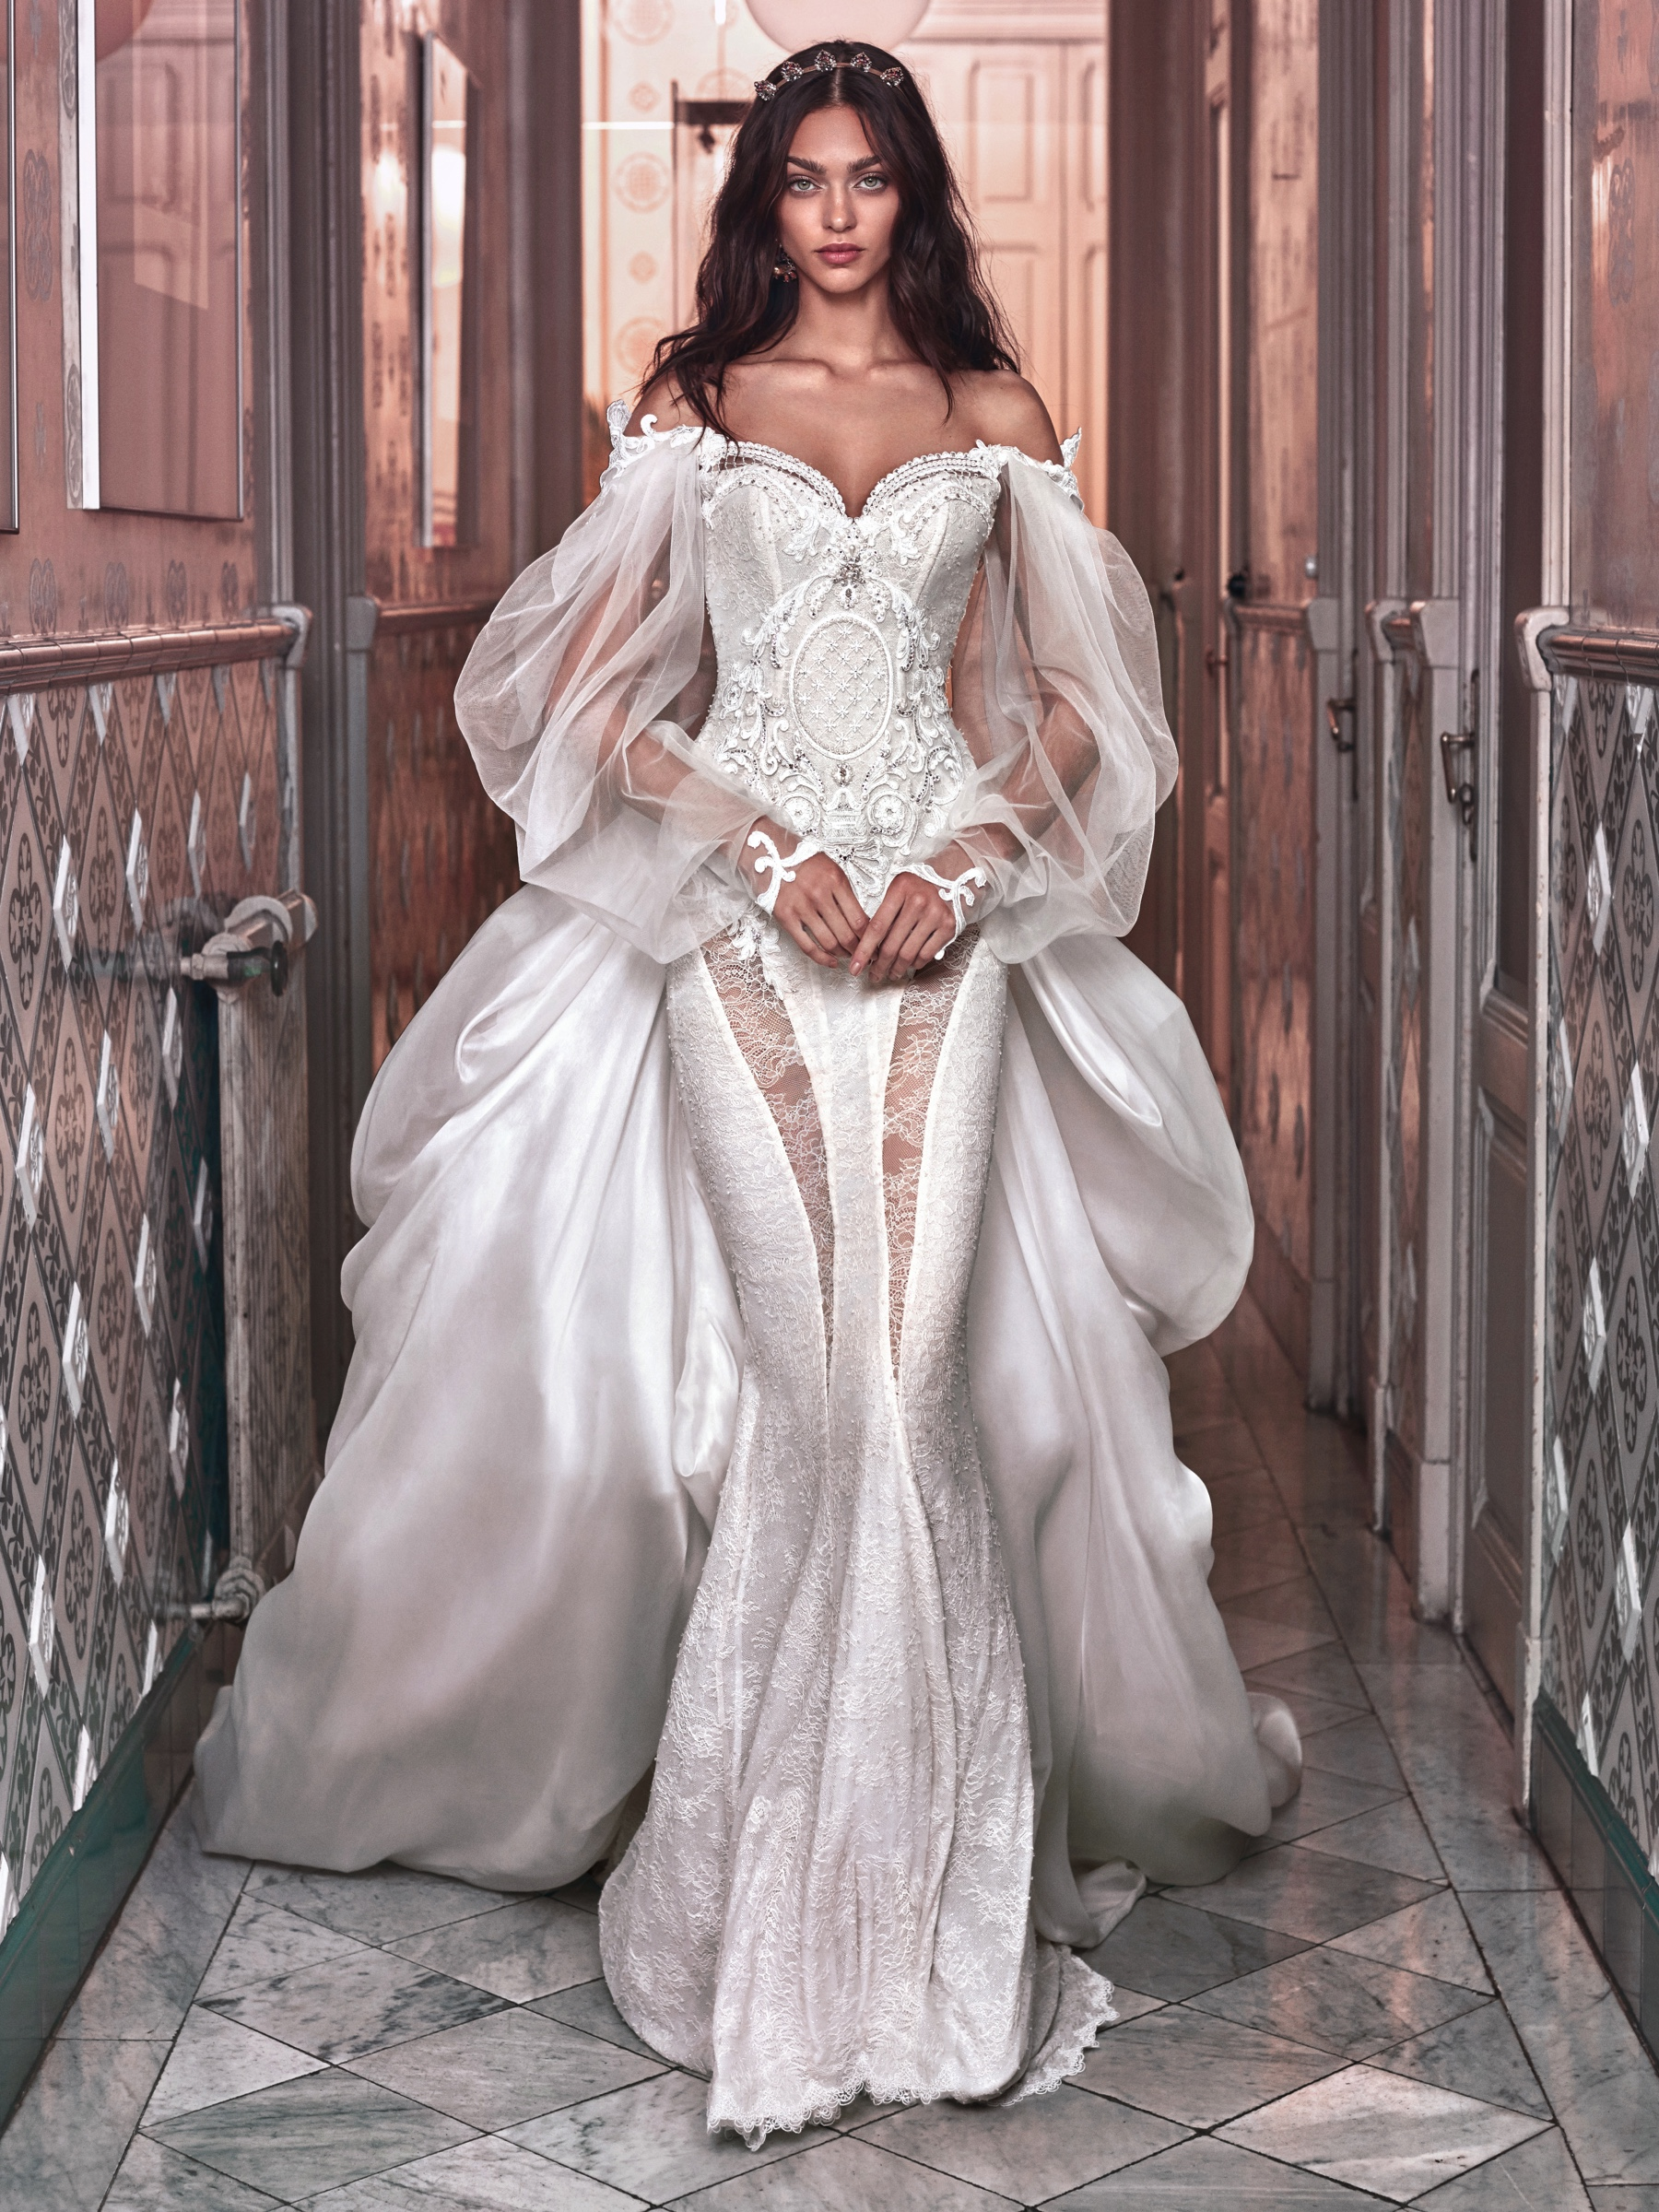 Sexy Victorian-inspired wedding dress